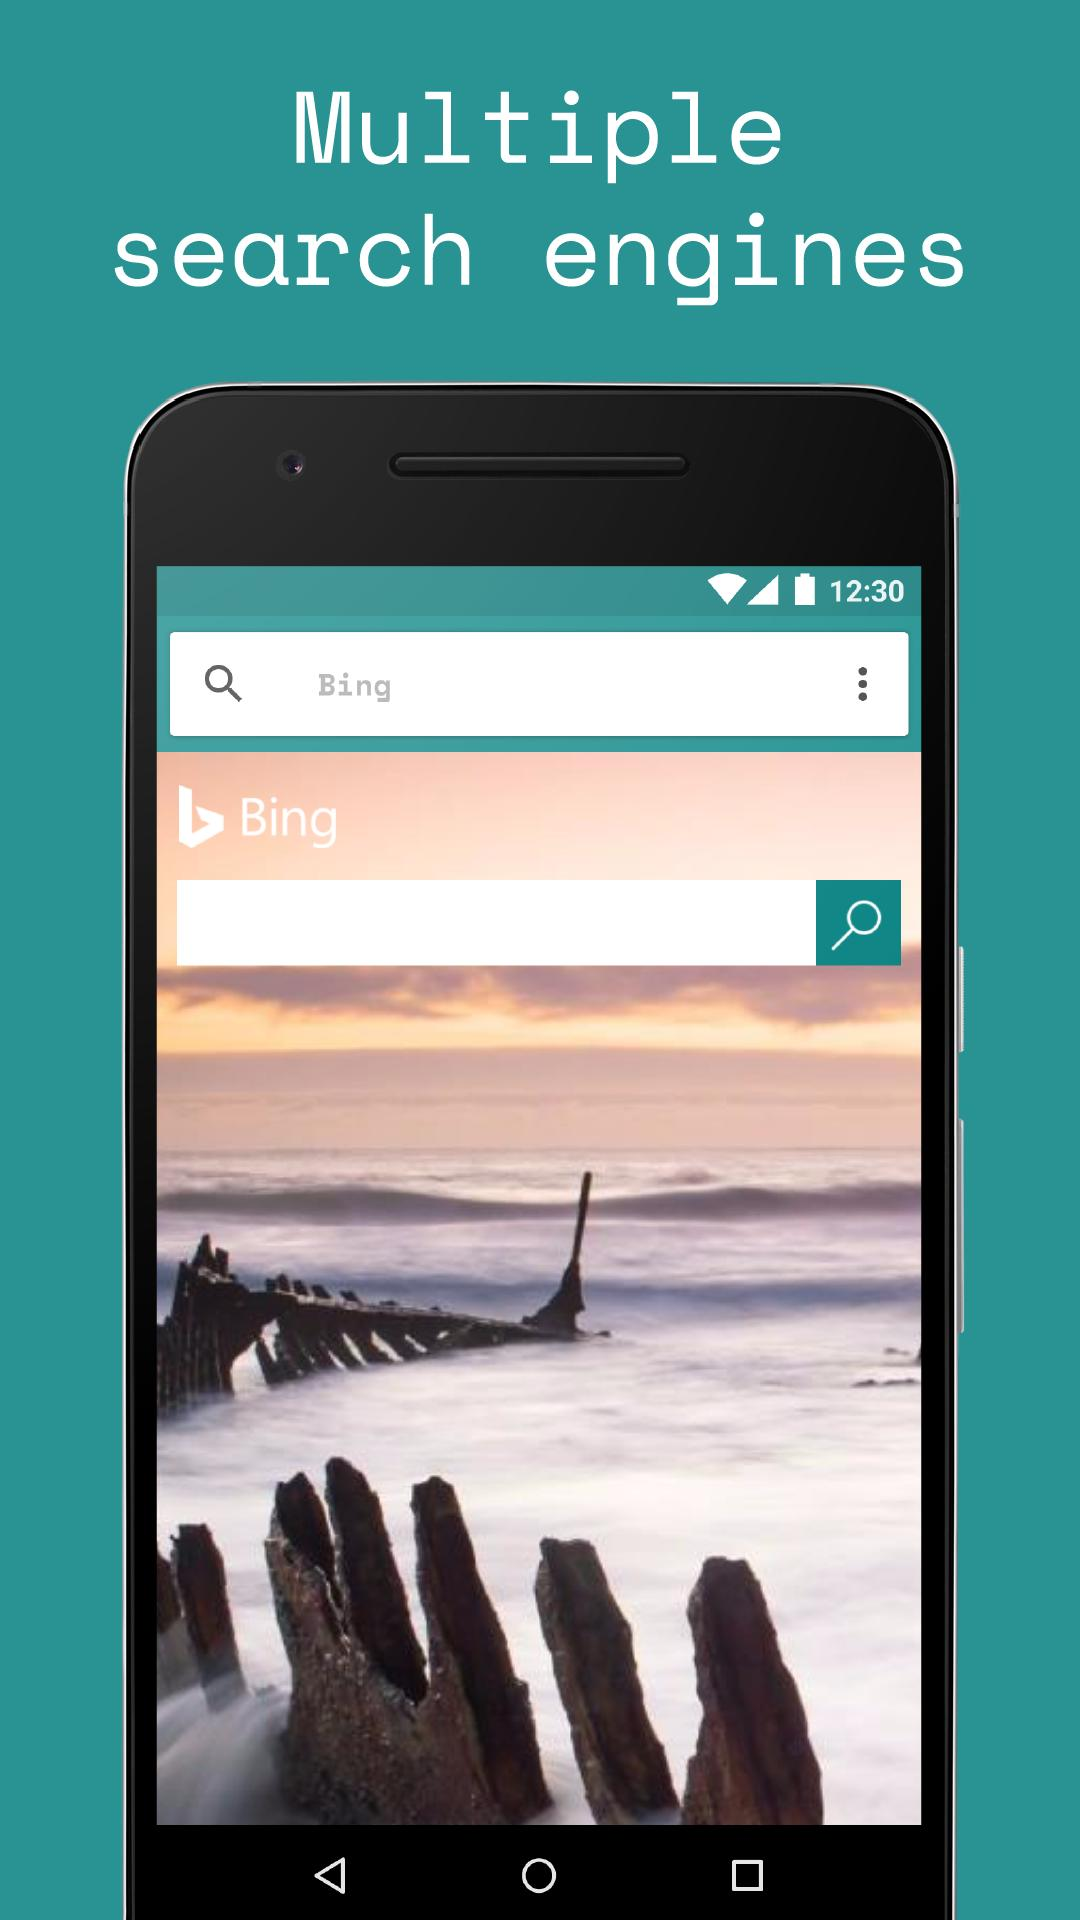 Colombo Browser [OLD] for Android - APK Download